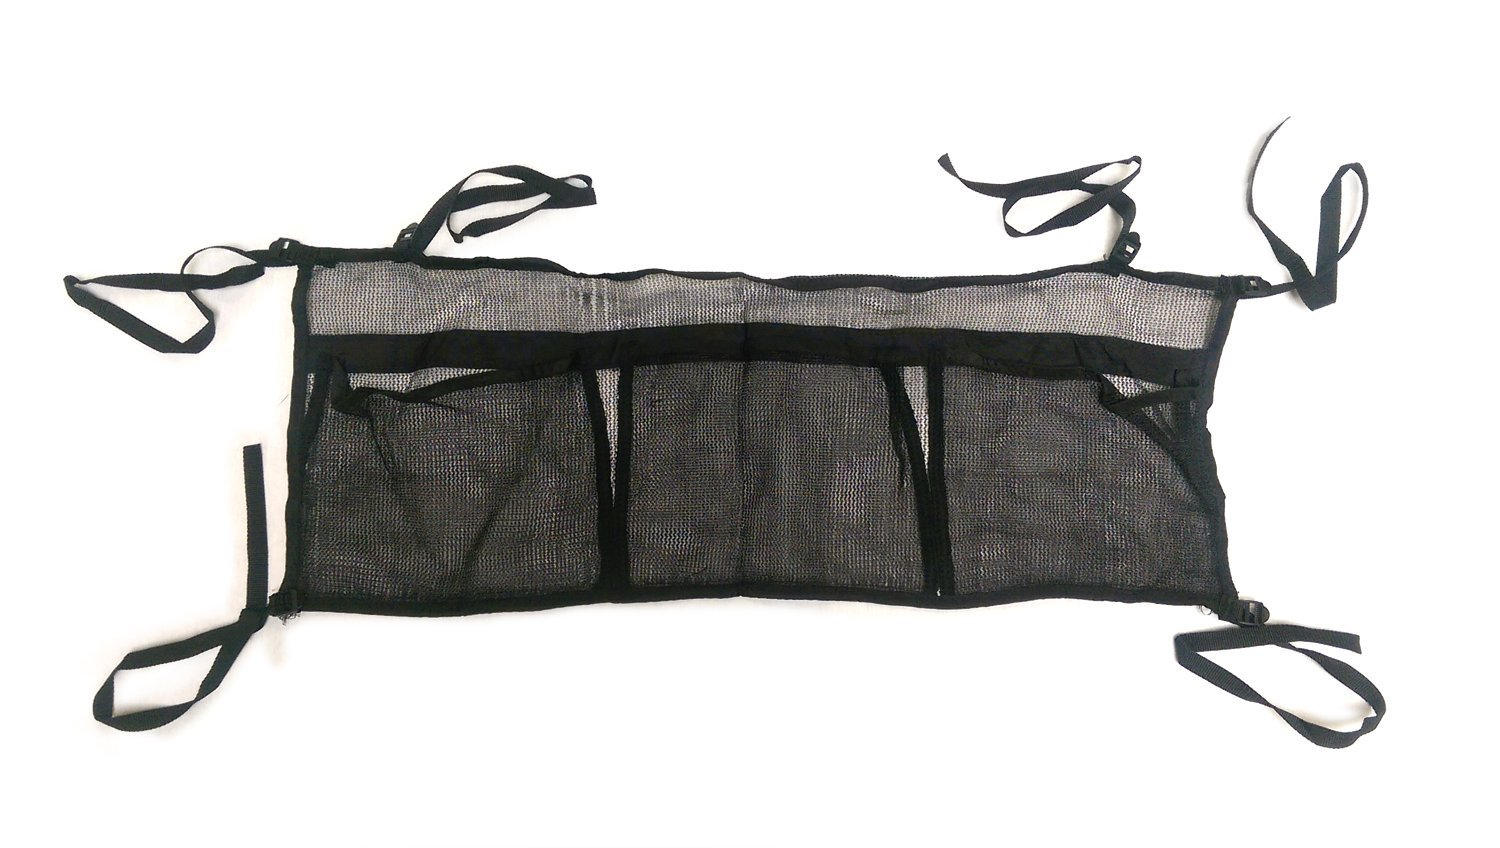 SkyBound Three Pouch Trampoline Shoe Bag, Black